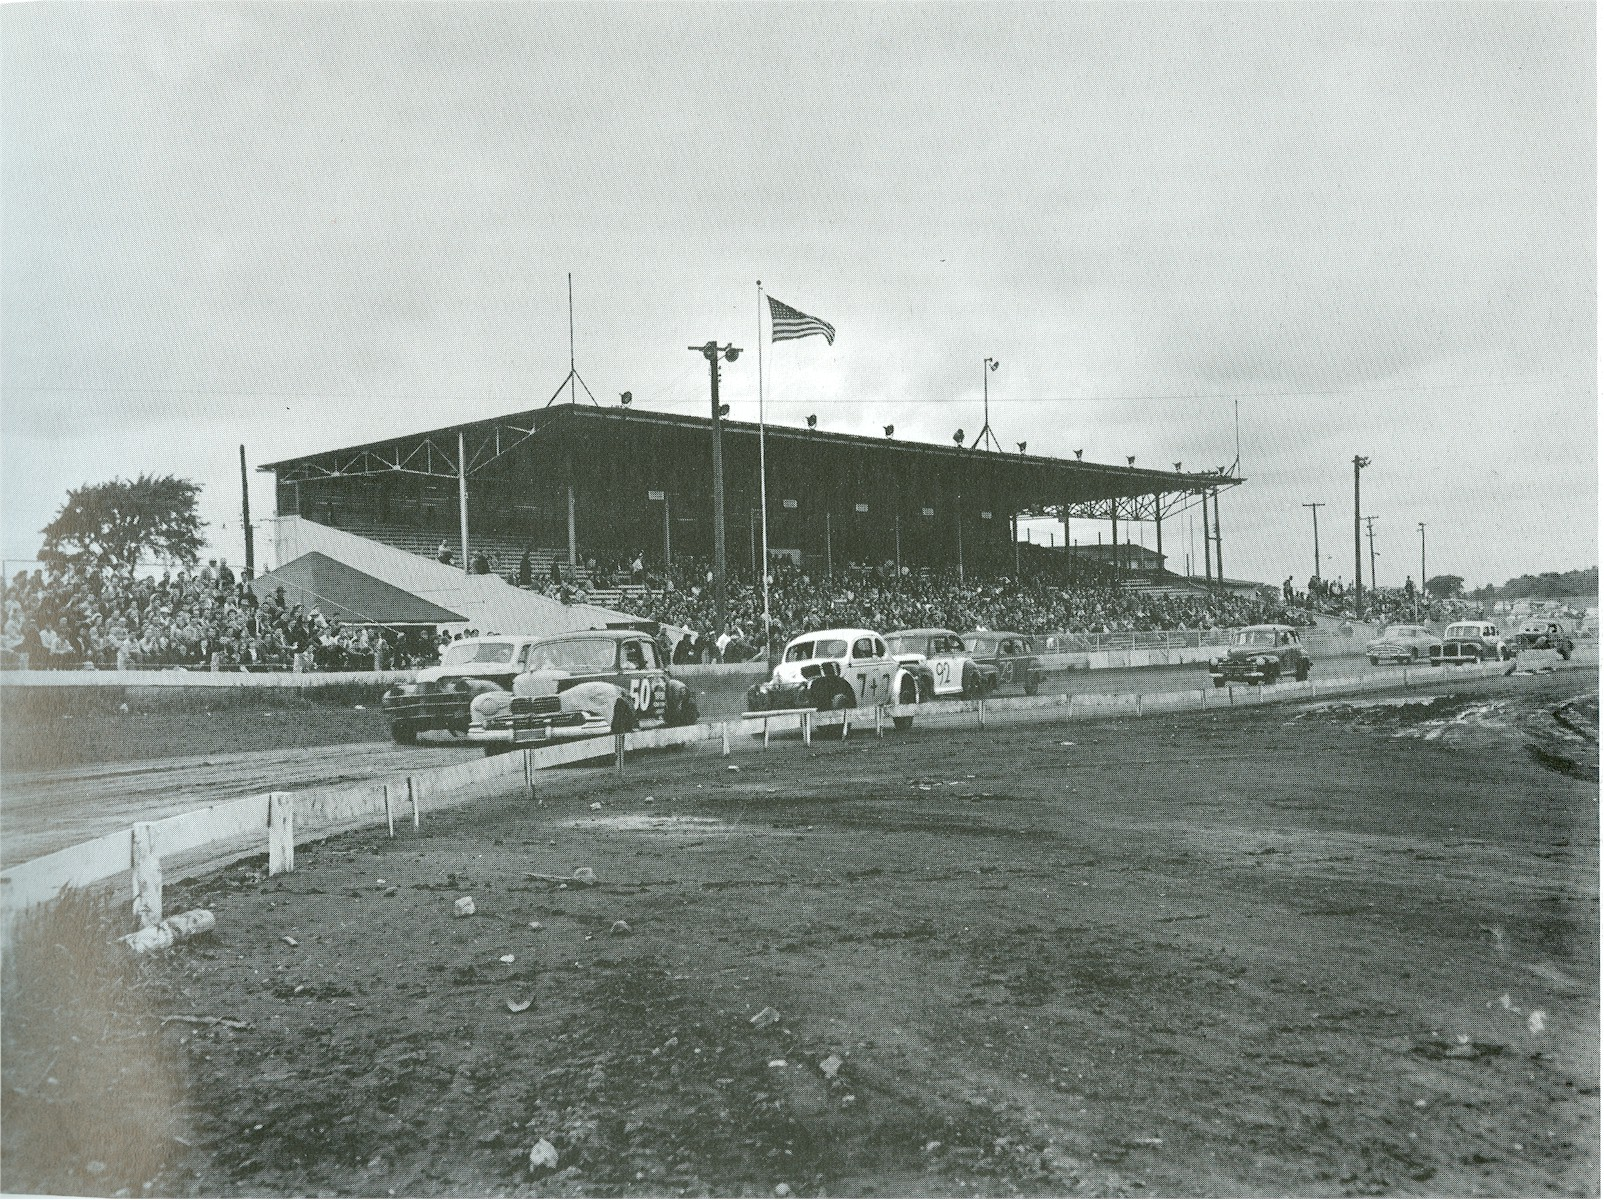 Stock car races on a track.